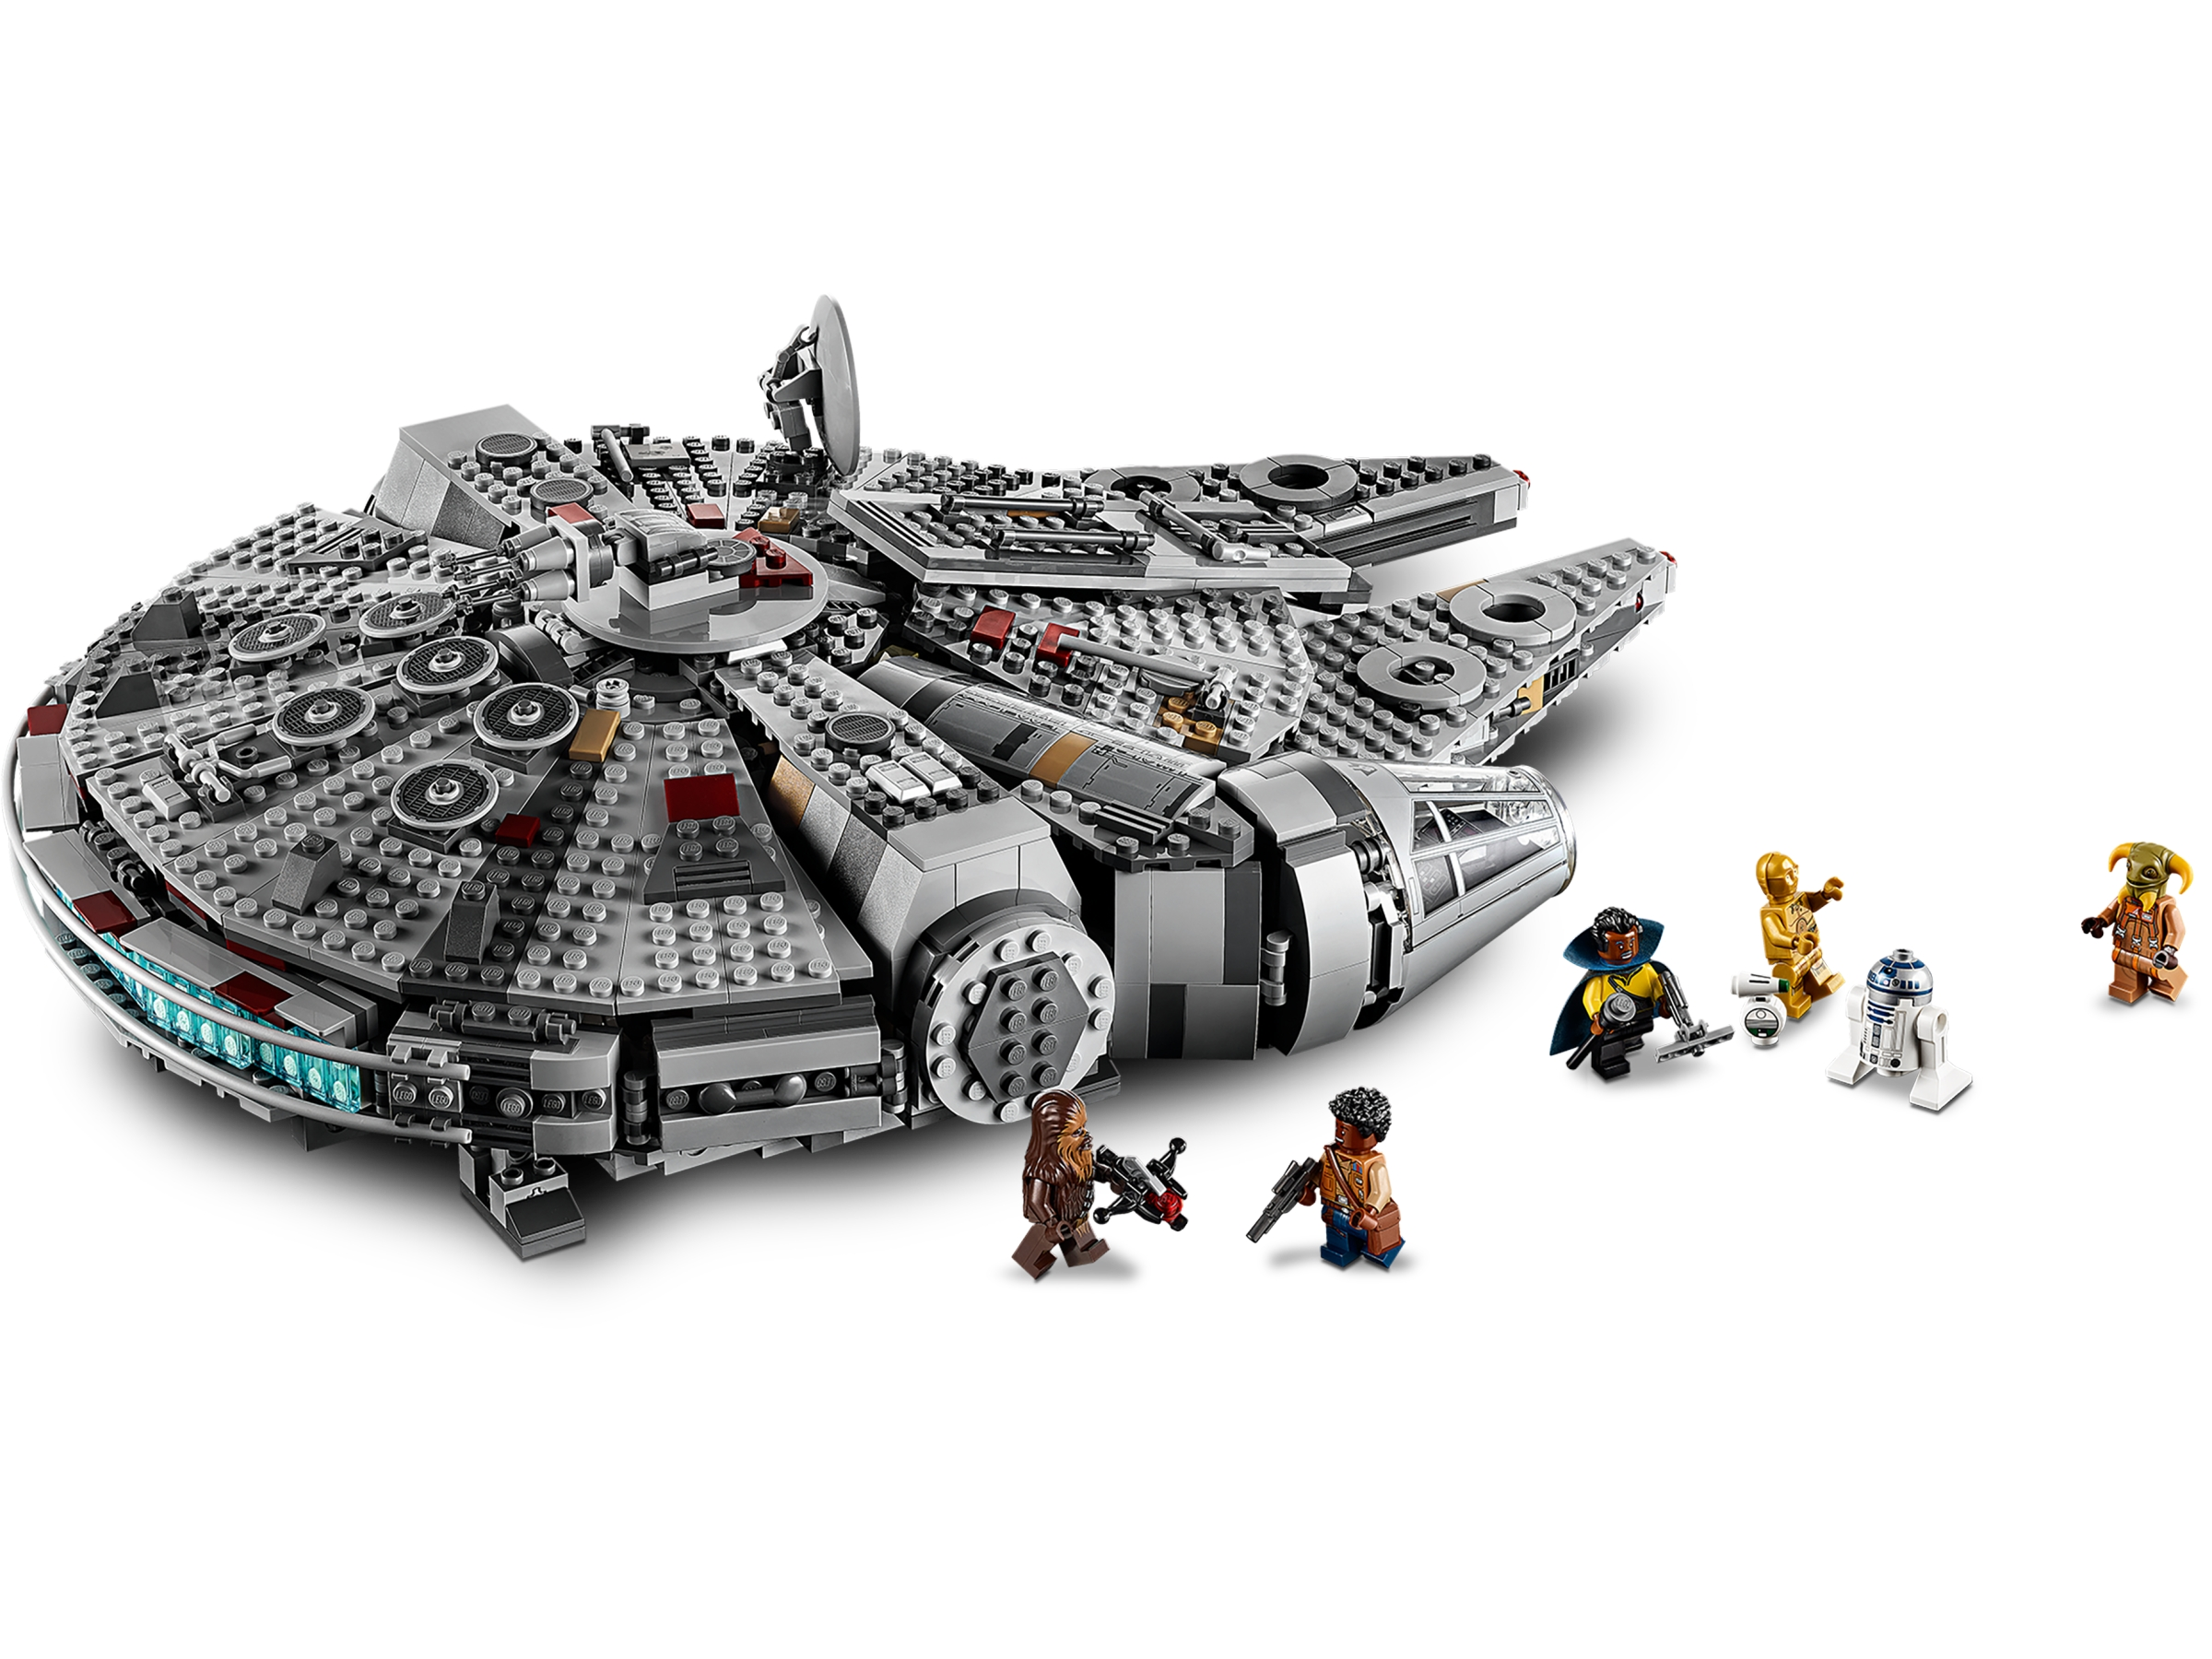 Millennium Falcon 75257 Star Wars Buy Online At The Official Lego Shop My